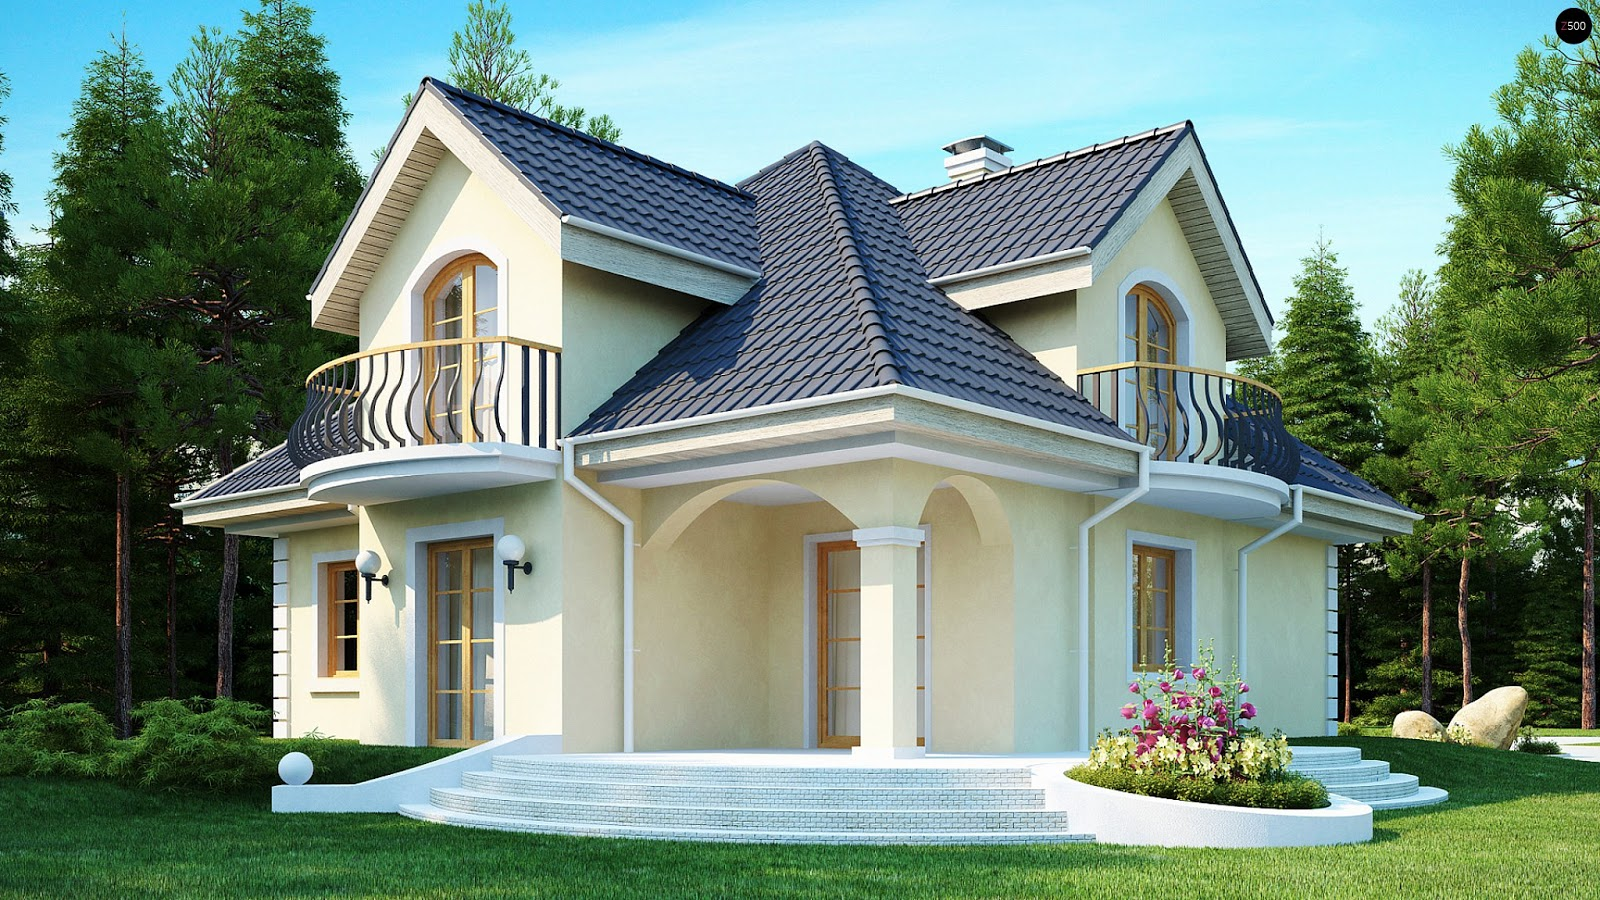 Ordinaire The Following Small Houses Photos Will Give You An Idea For Your Dream House  Or For Your Current House And How To Make It More Beautiful.